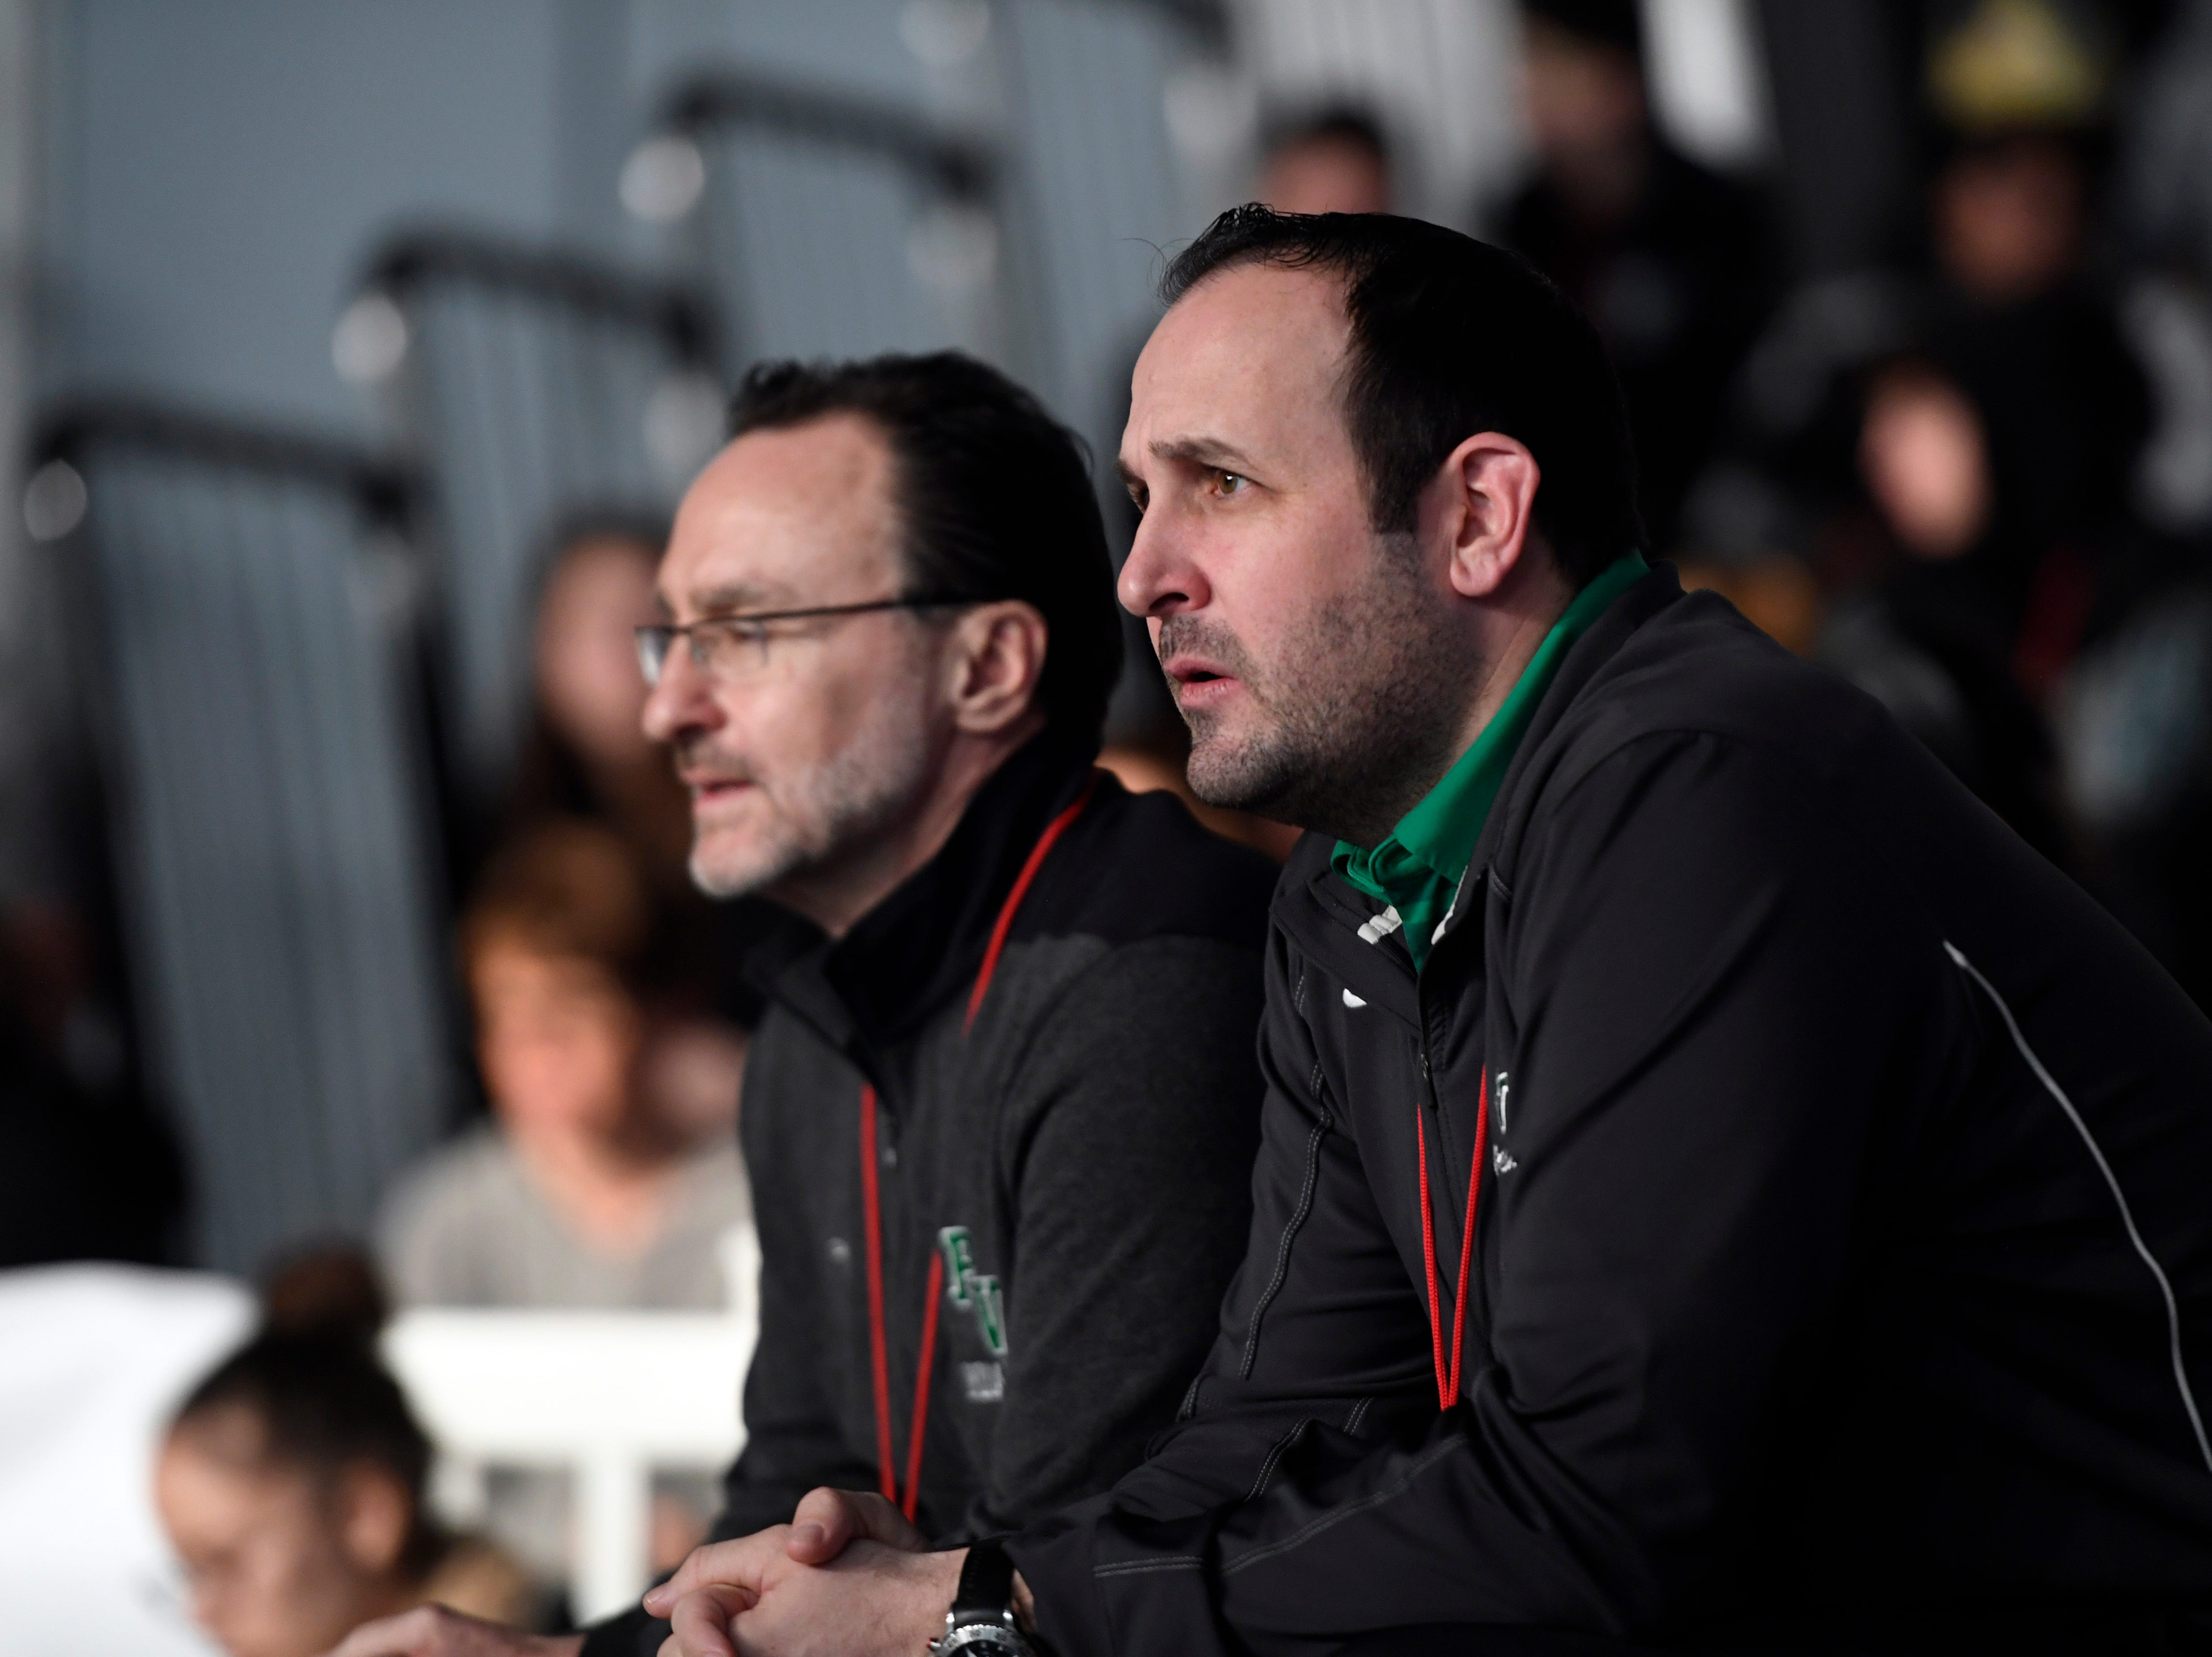 Pascack Valley head coach Tom Gallione, right, watches as Tommy Chiellini (not pictured) takes the mat for the 182-pound final during the Sam Cali Battle for the Belt tournament on Sunday, Jan. 6, 2019, in West Orange.